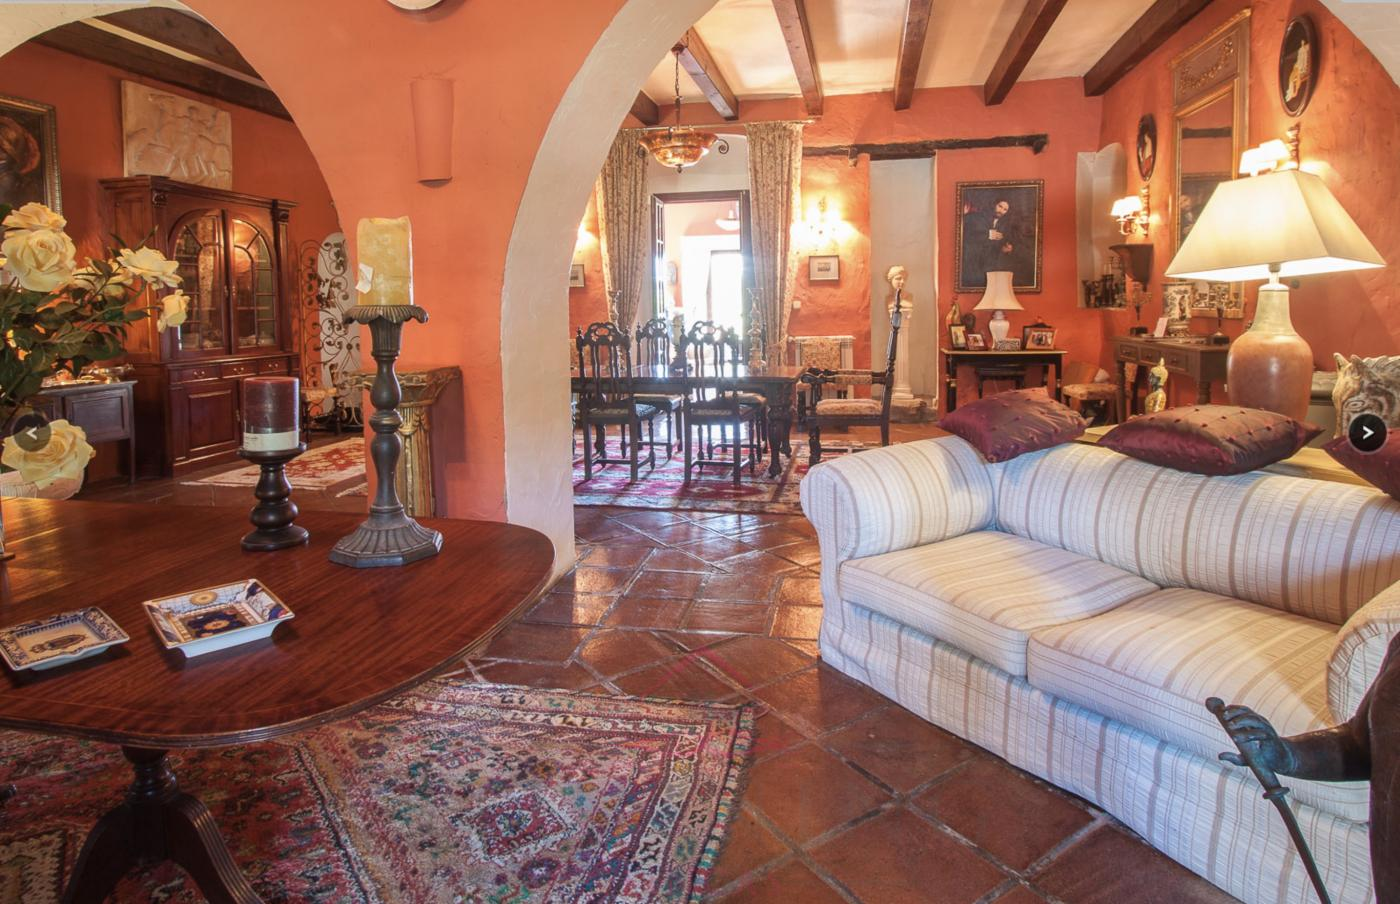 7 Bedroom Coastal Property Country Style Living for Sale in Manilva